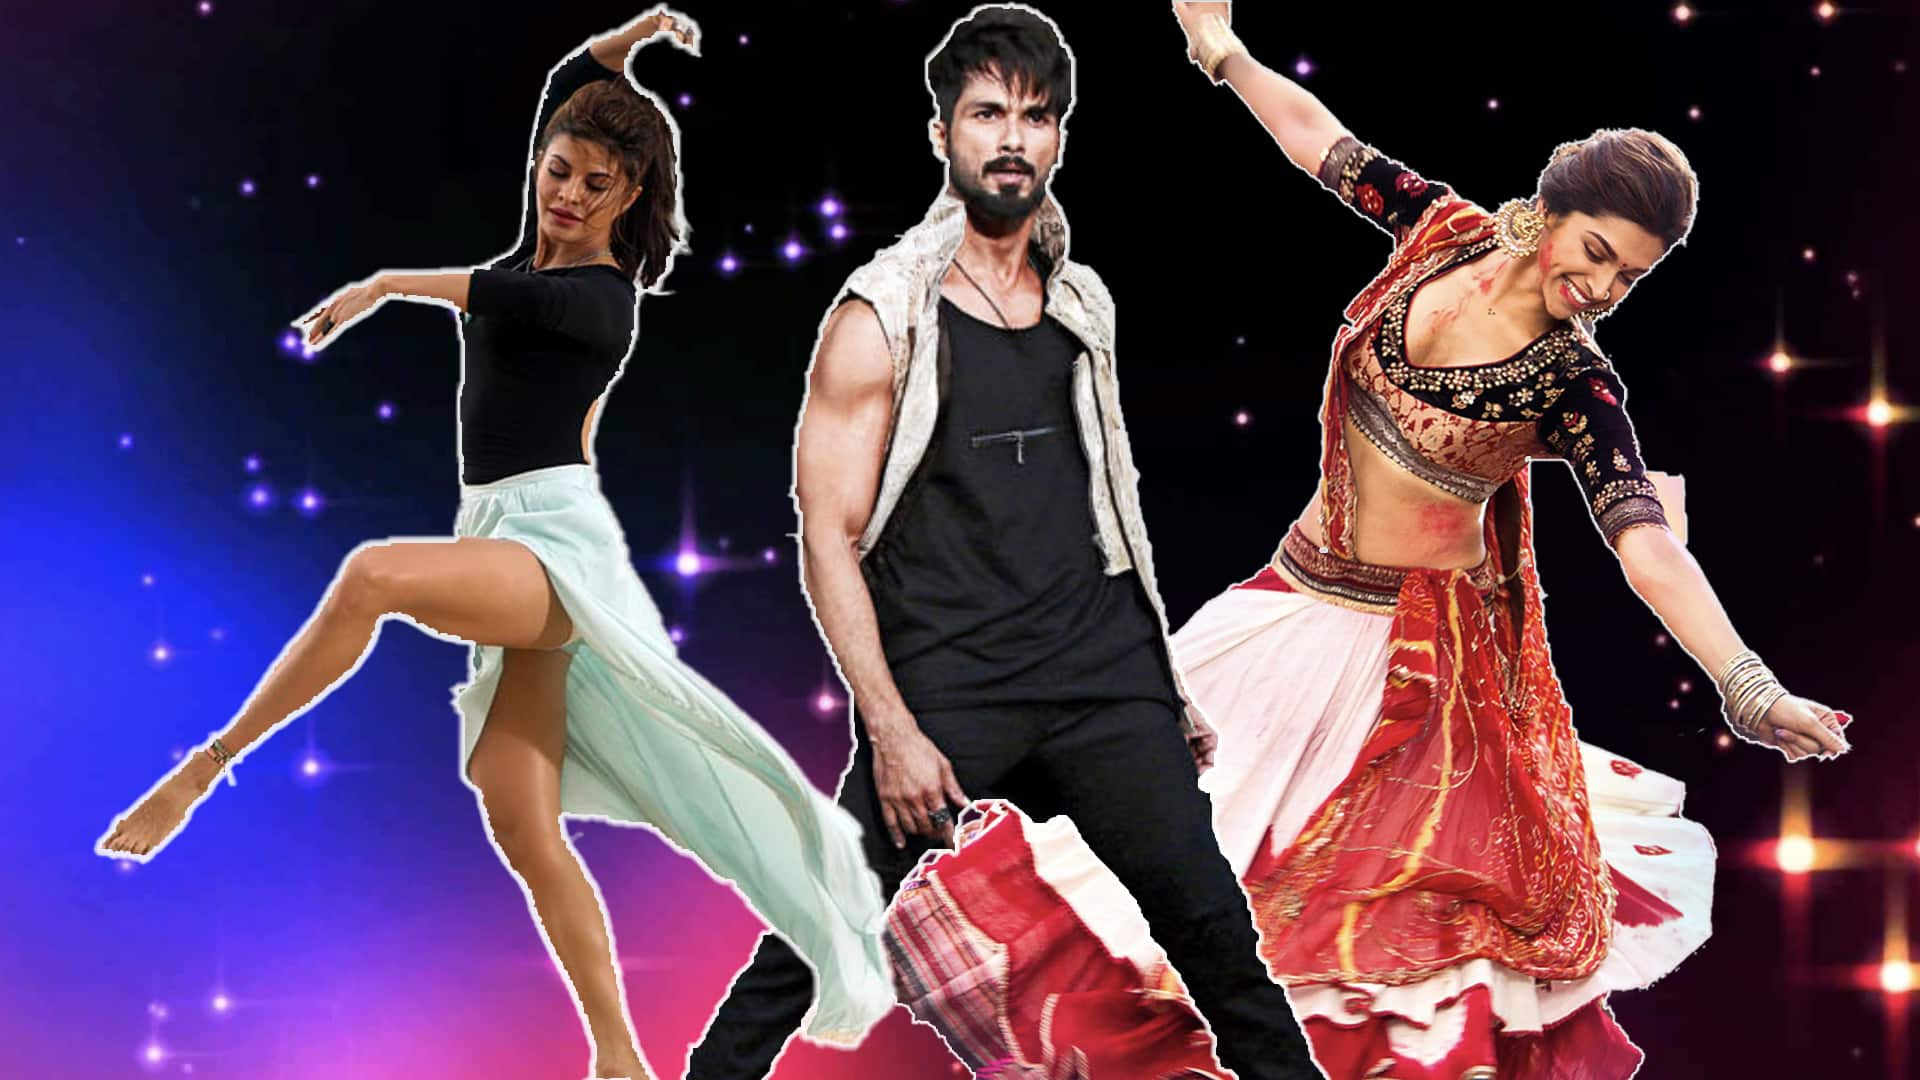 Bollywood divas who are making the nation groove!